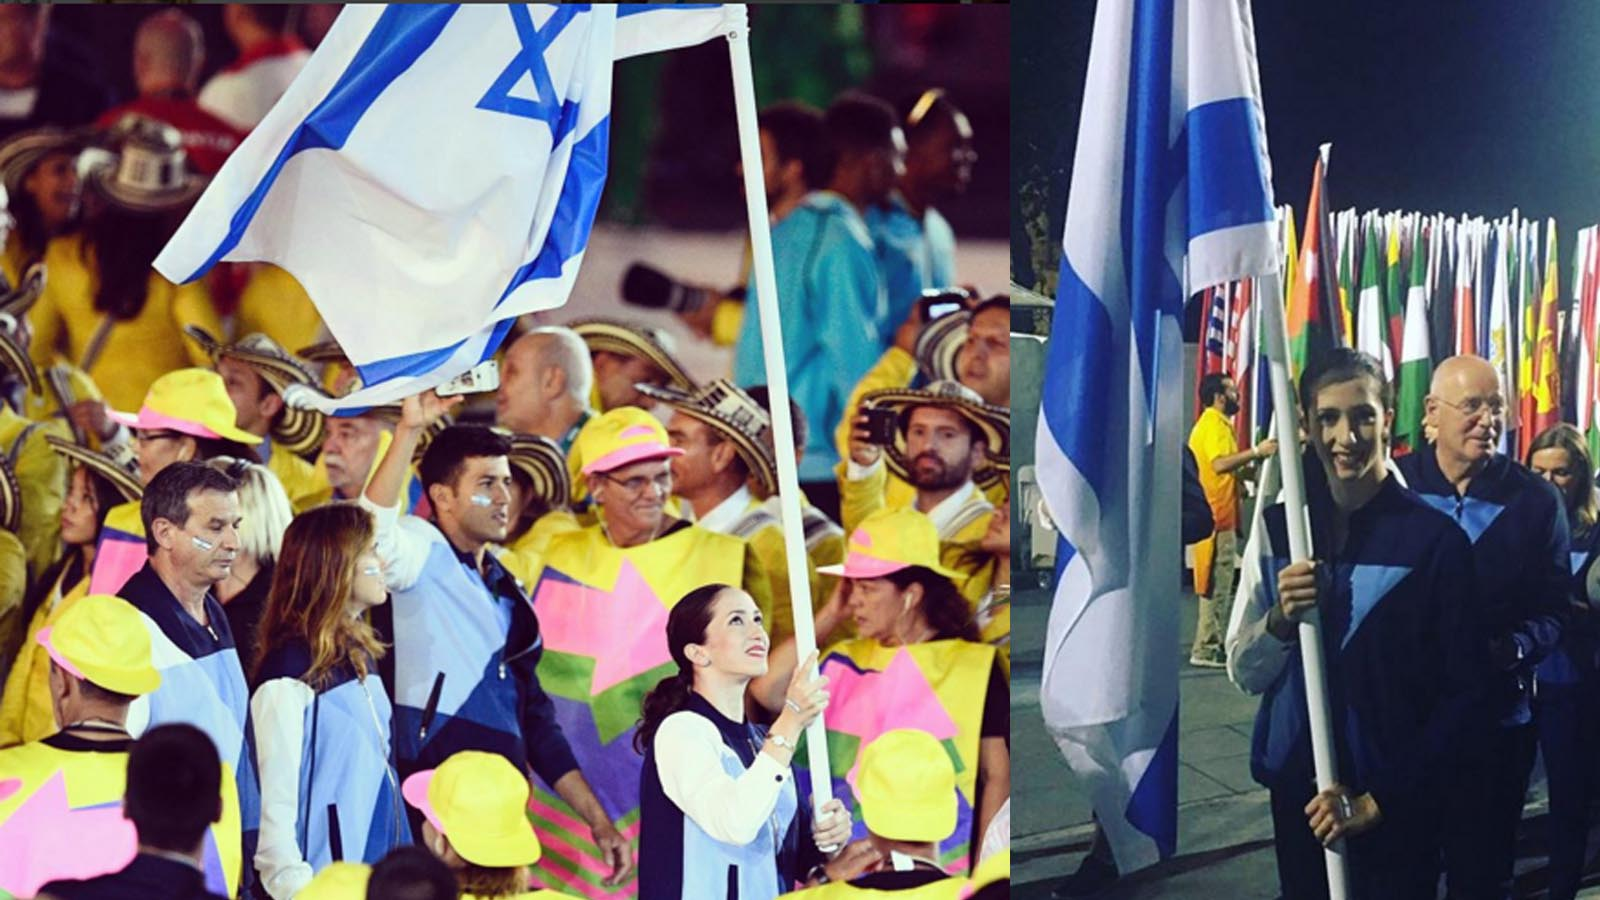 Gymnast Neta Rivkin carries the Israeli flag during the opening ceremony of the Rio Olympics. Photo via instagram.com/olympicteamisrael